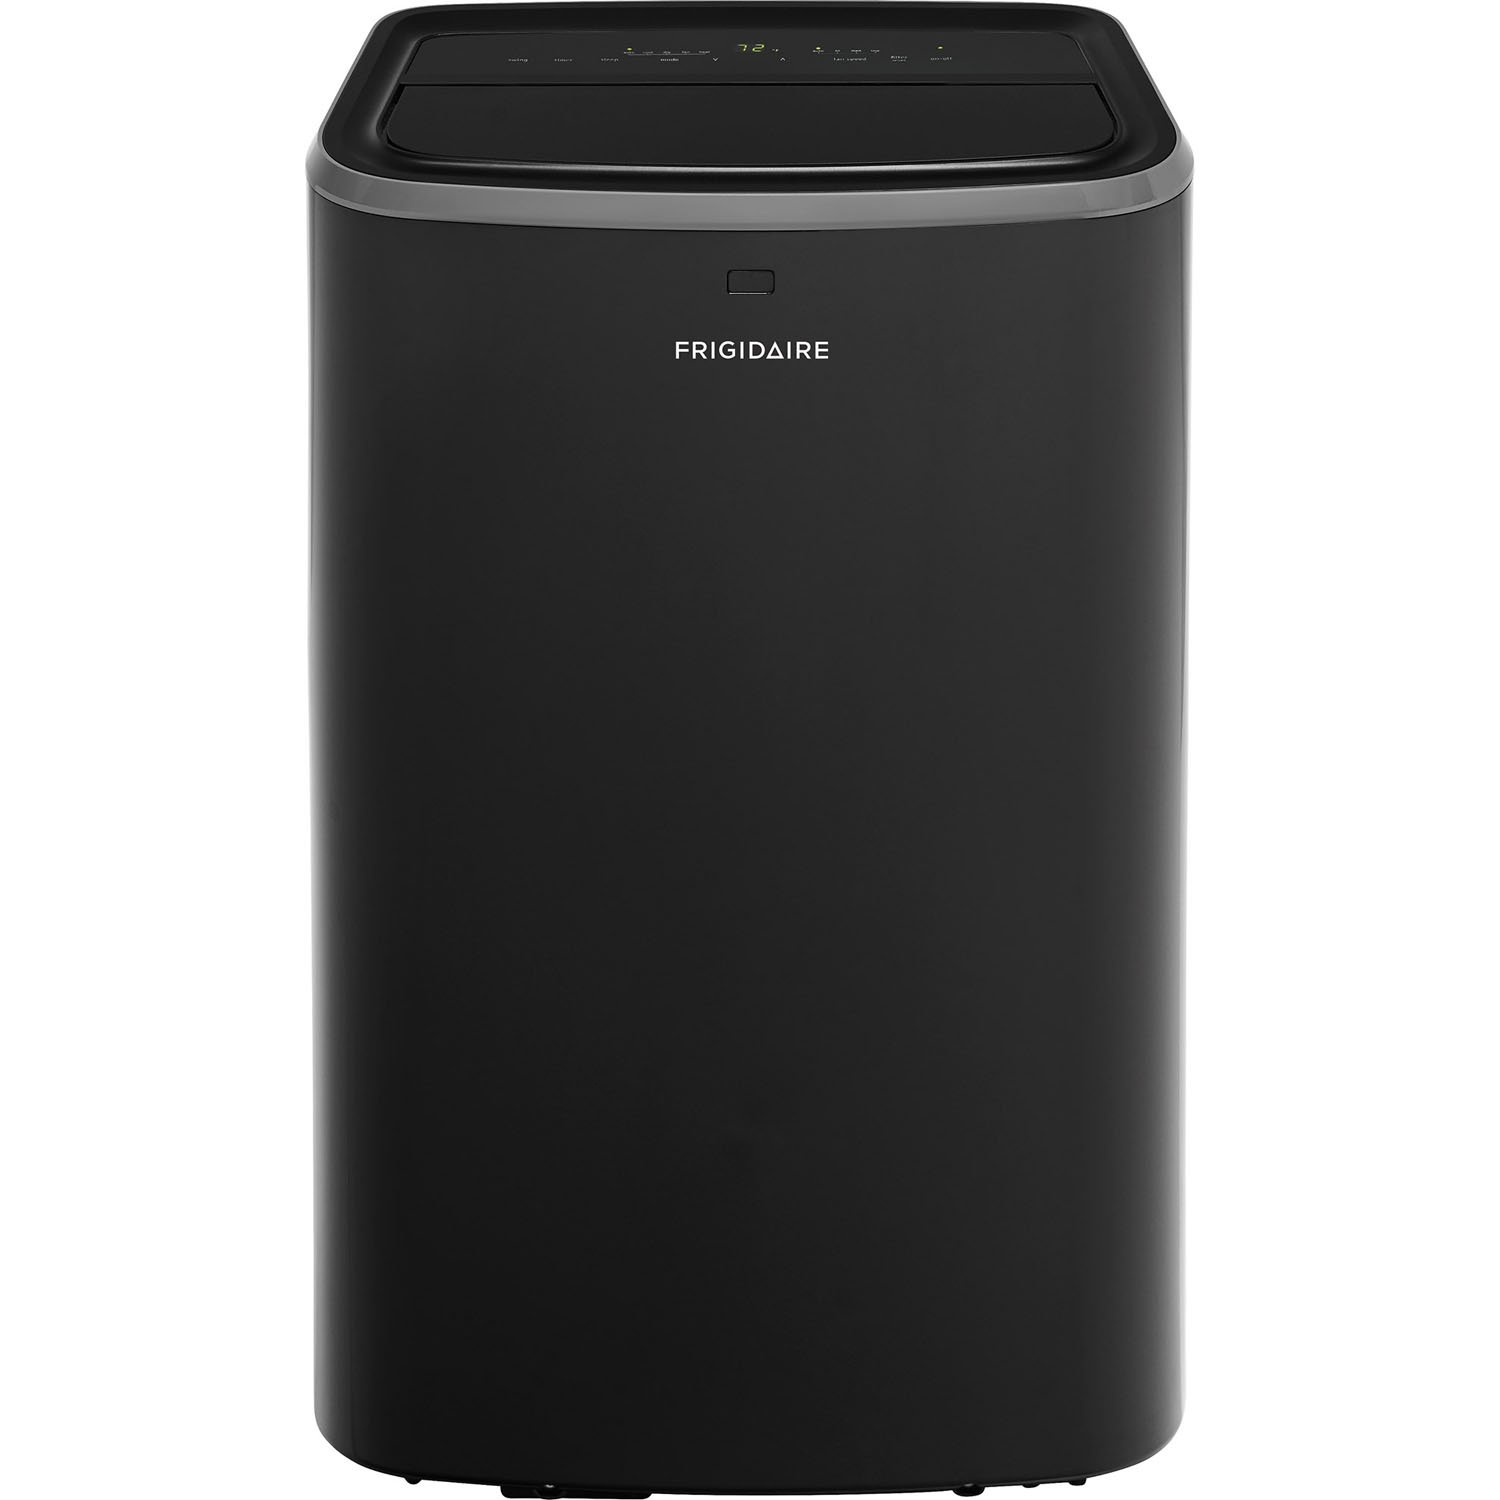 Frigidaire FFPH1422U1Portable Rooms up to 700-Sq. Ft. Air Conditioner 14,000 BTU Black